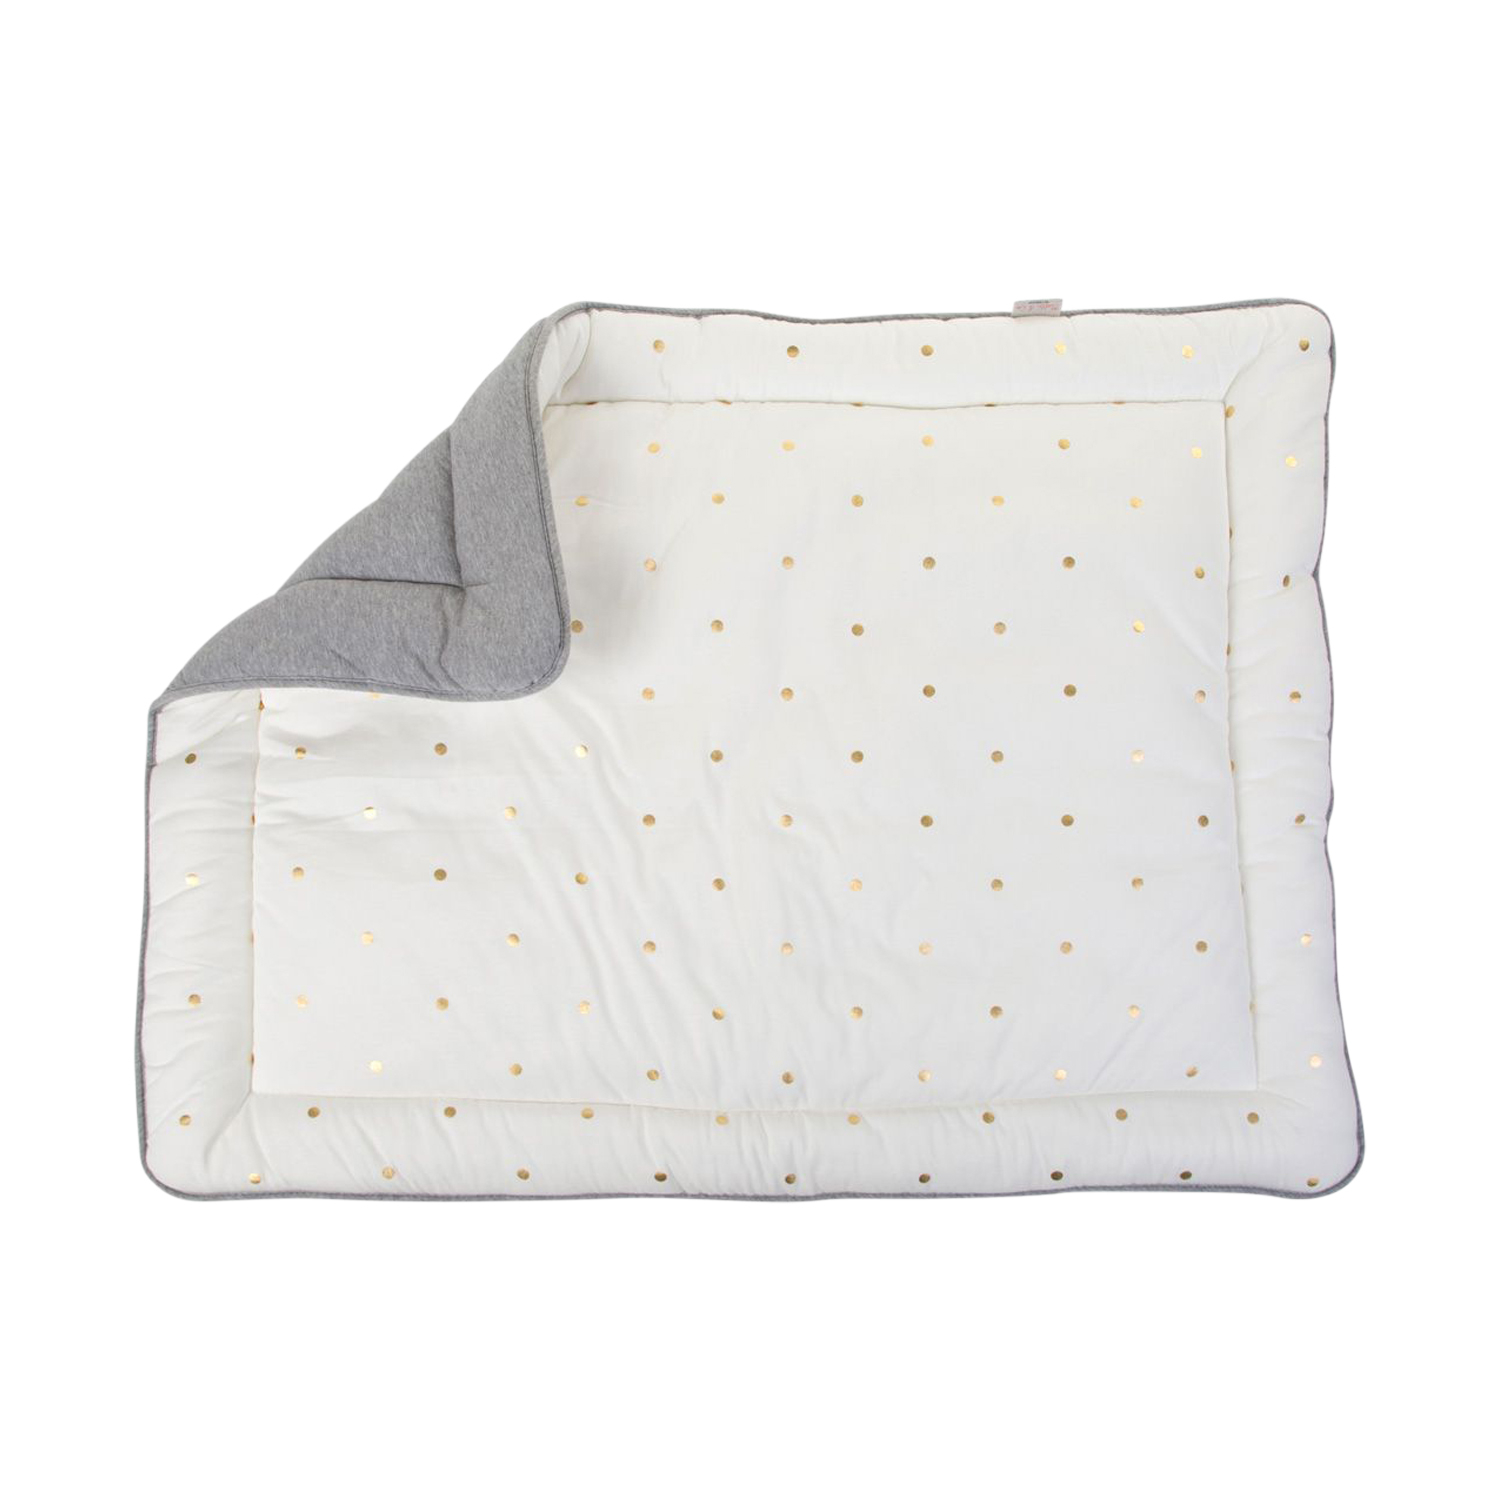 Childhome Boxkleed Grey - Gold Dots 75 x 95 cm